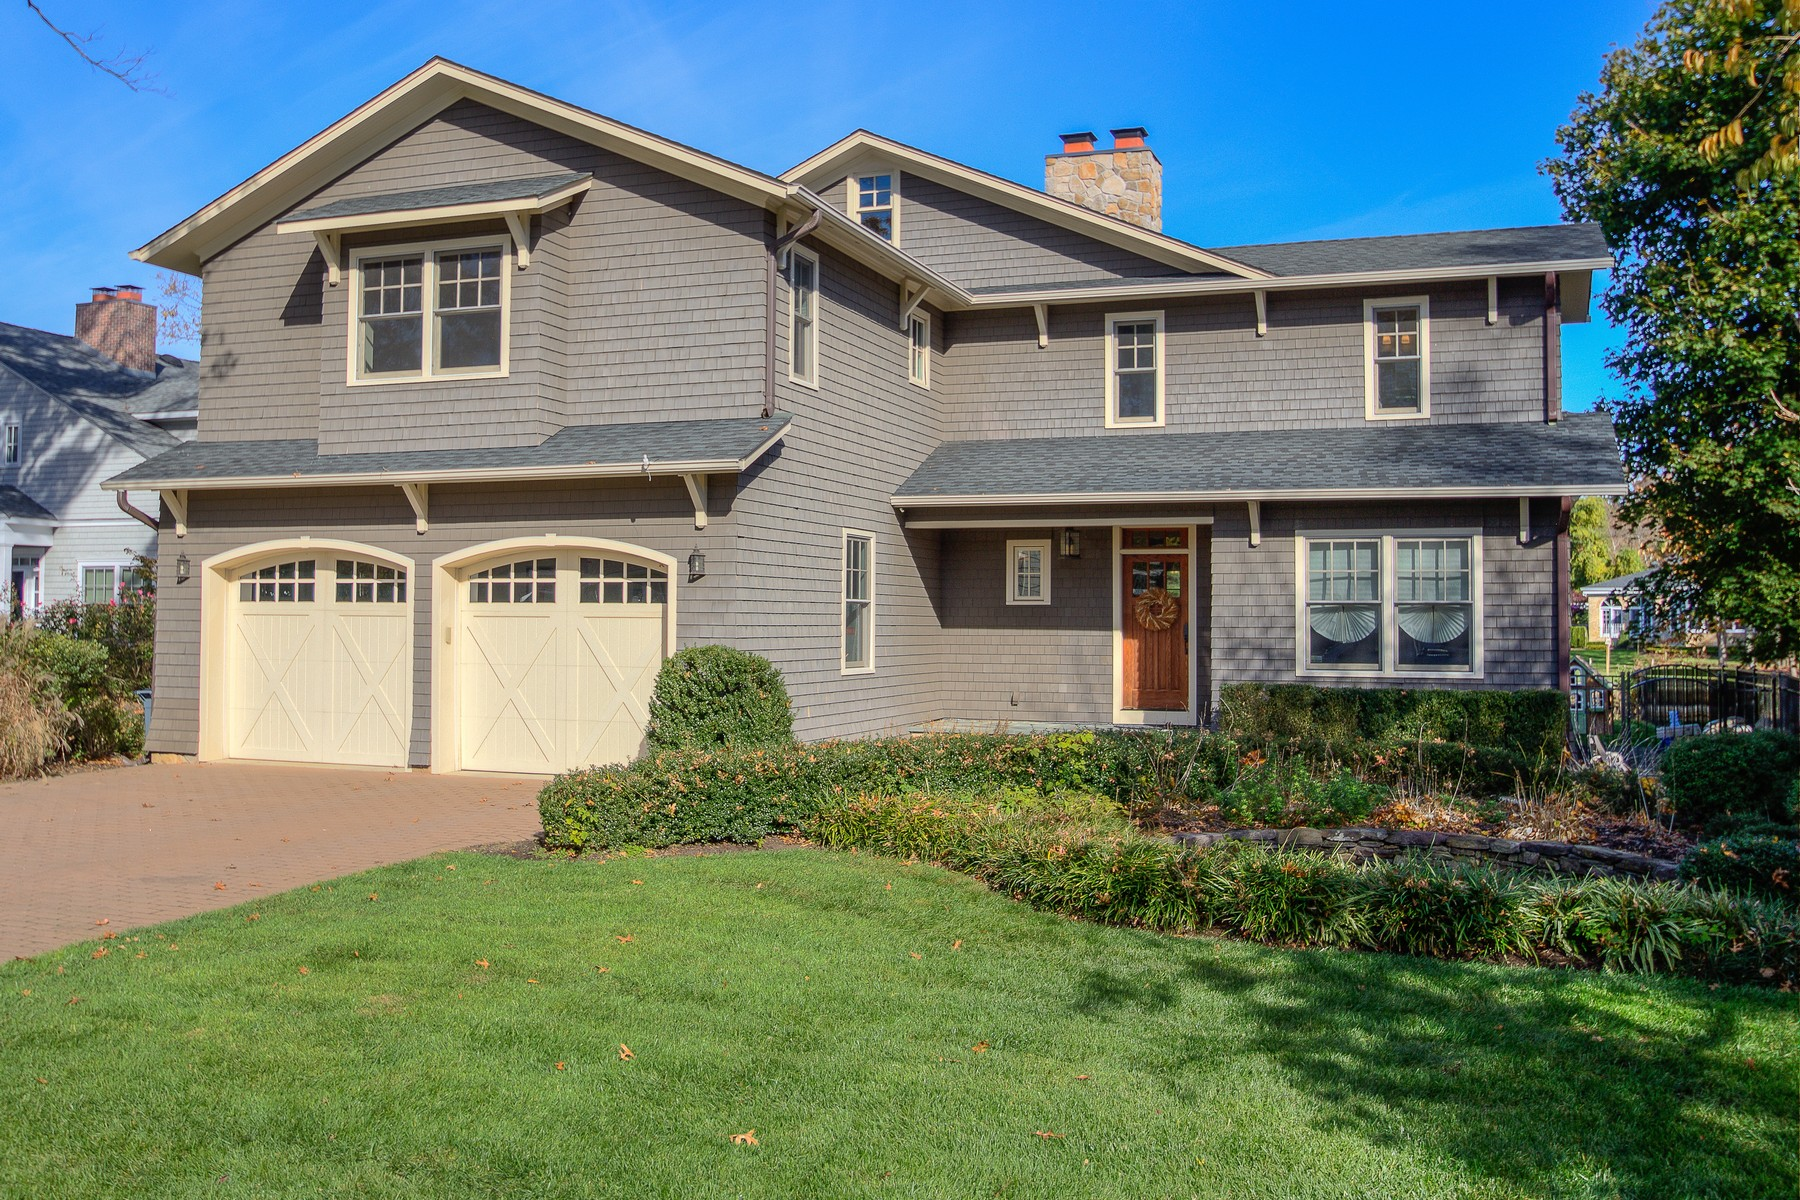 Single Family Home for Sale at SHORE SERENITY 43 Wardell Ave Rumson, New Jersey, 07760 United States